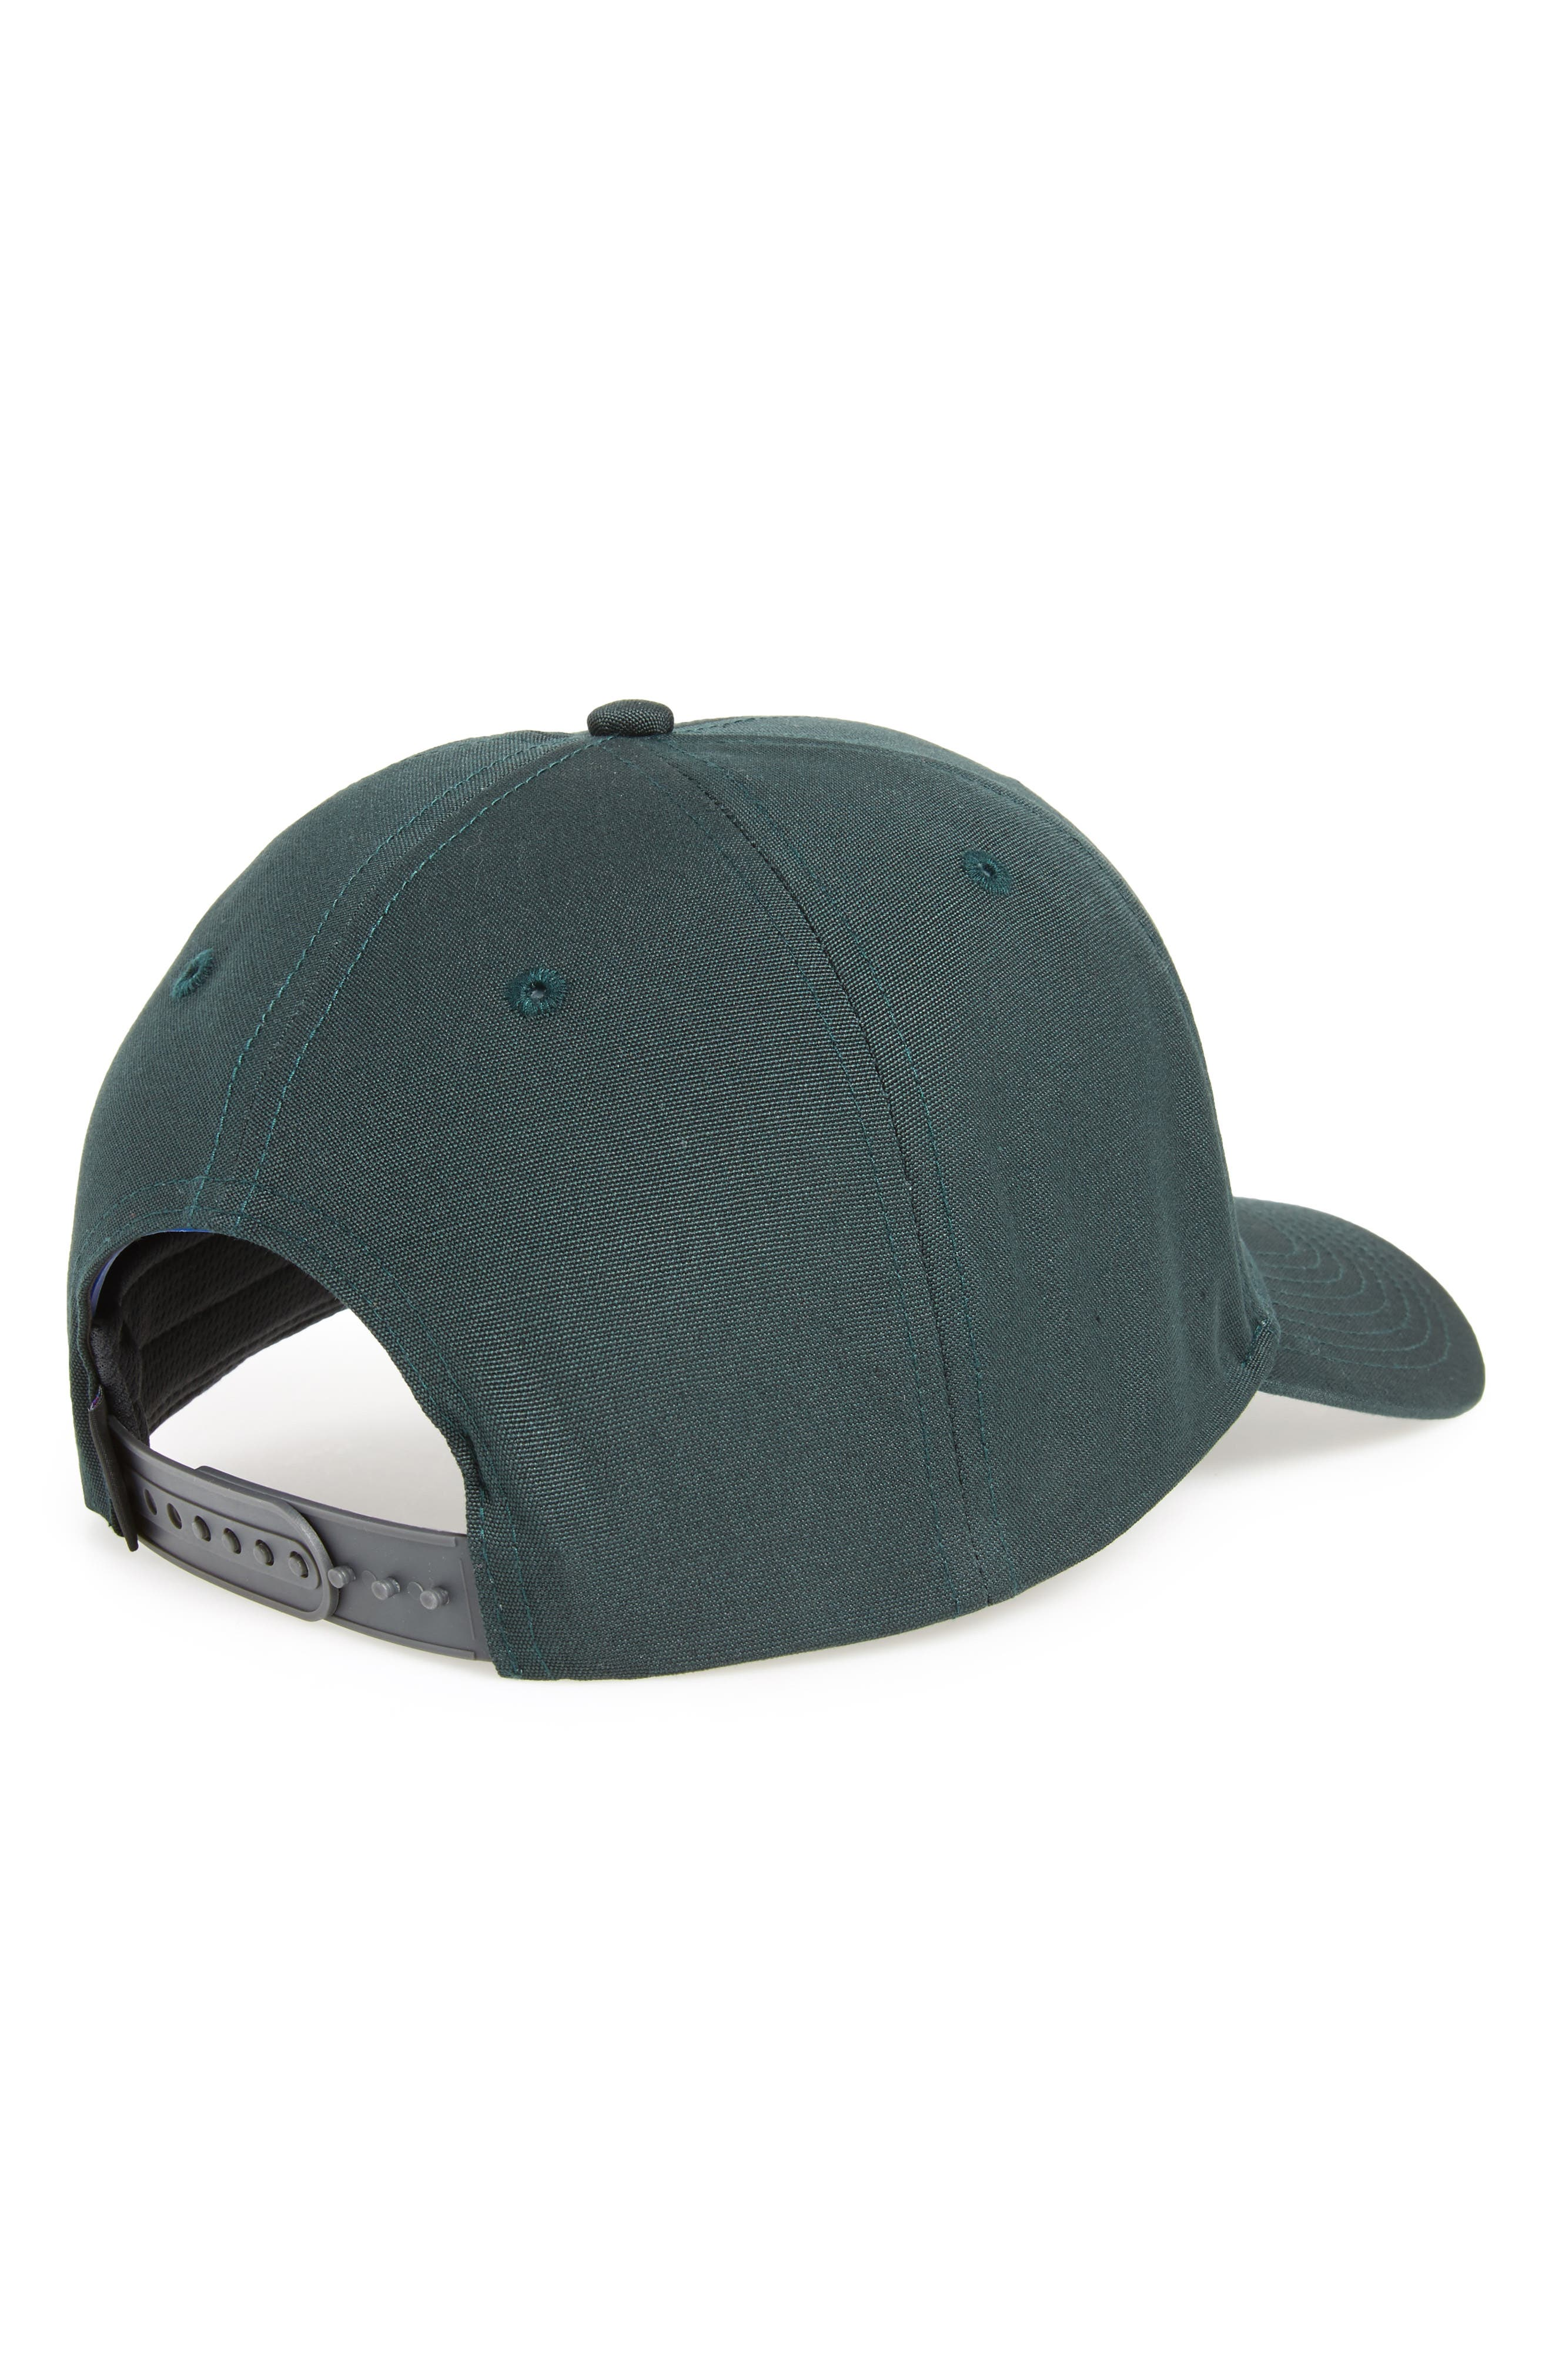 Up & Out Roger That Trucker Cap,                             Alternate thumbnail 2, color,                             021